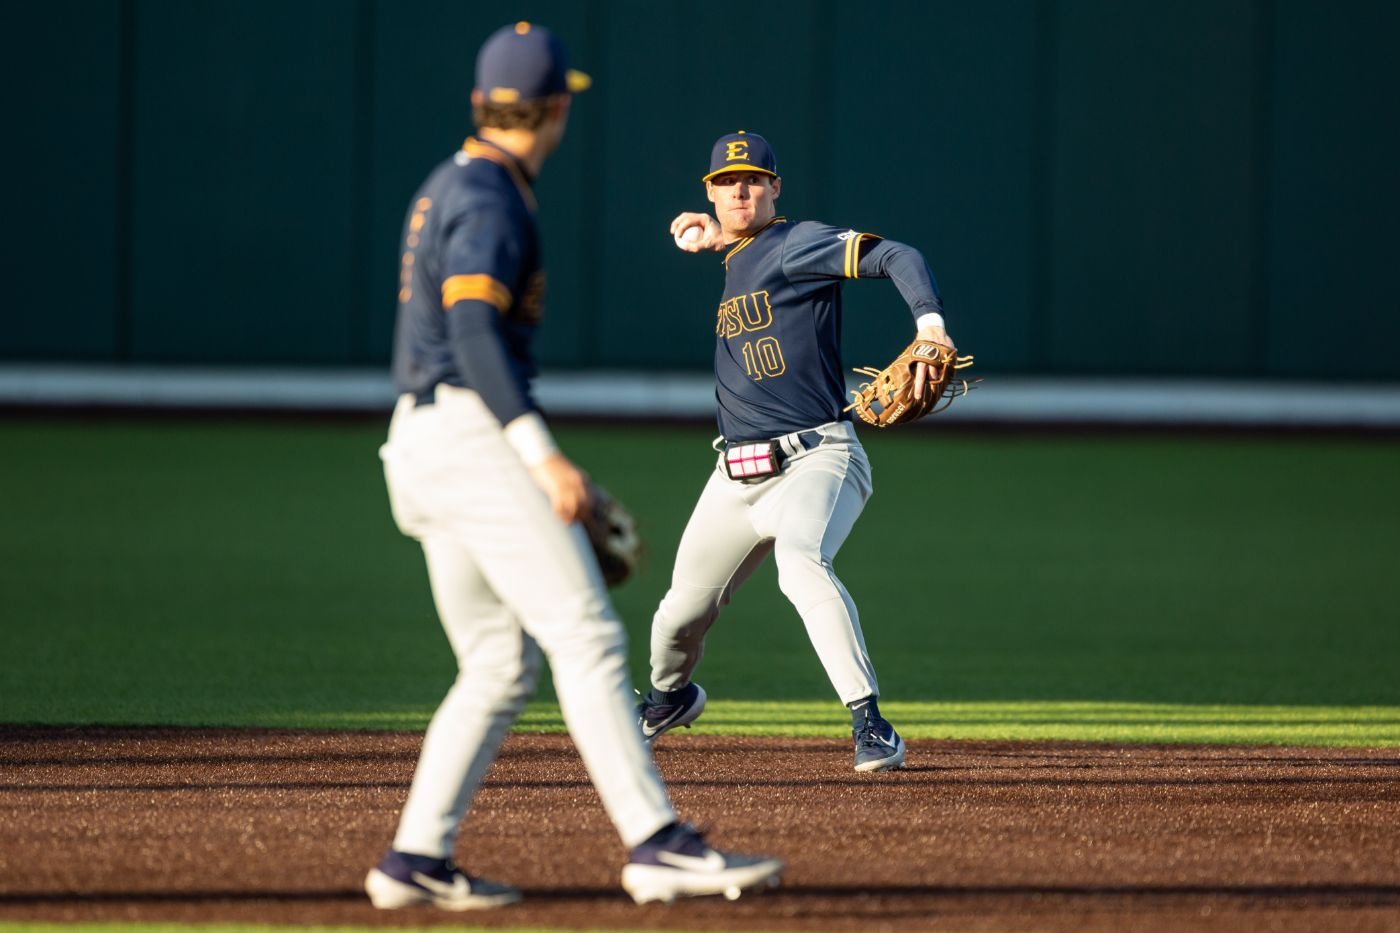 ETSU eliminated with 11-7 loss to No. 4 Mercer